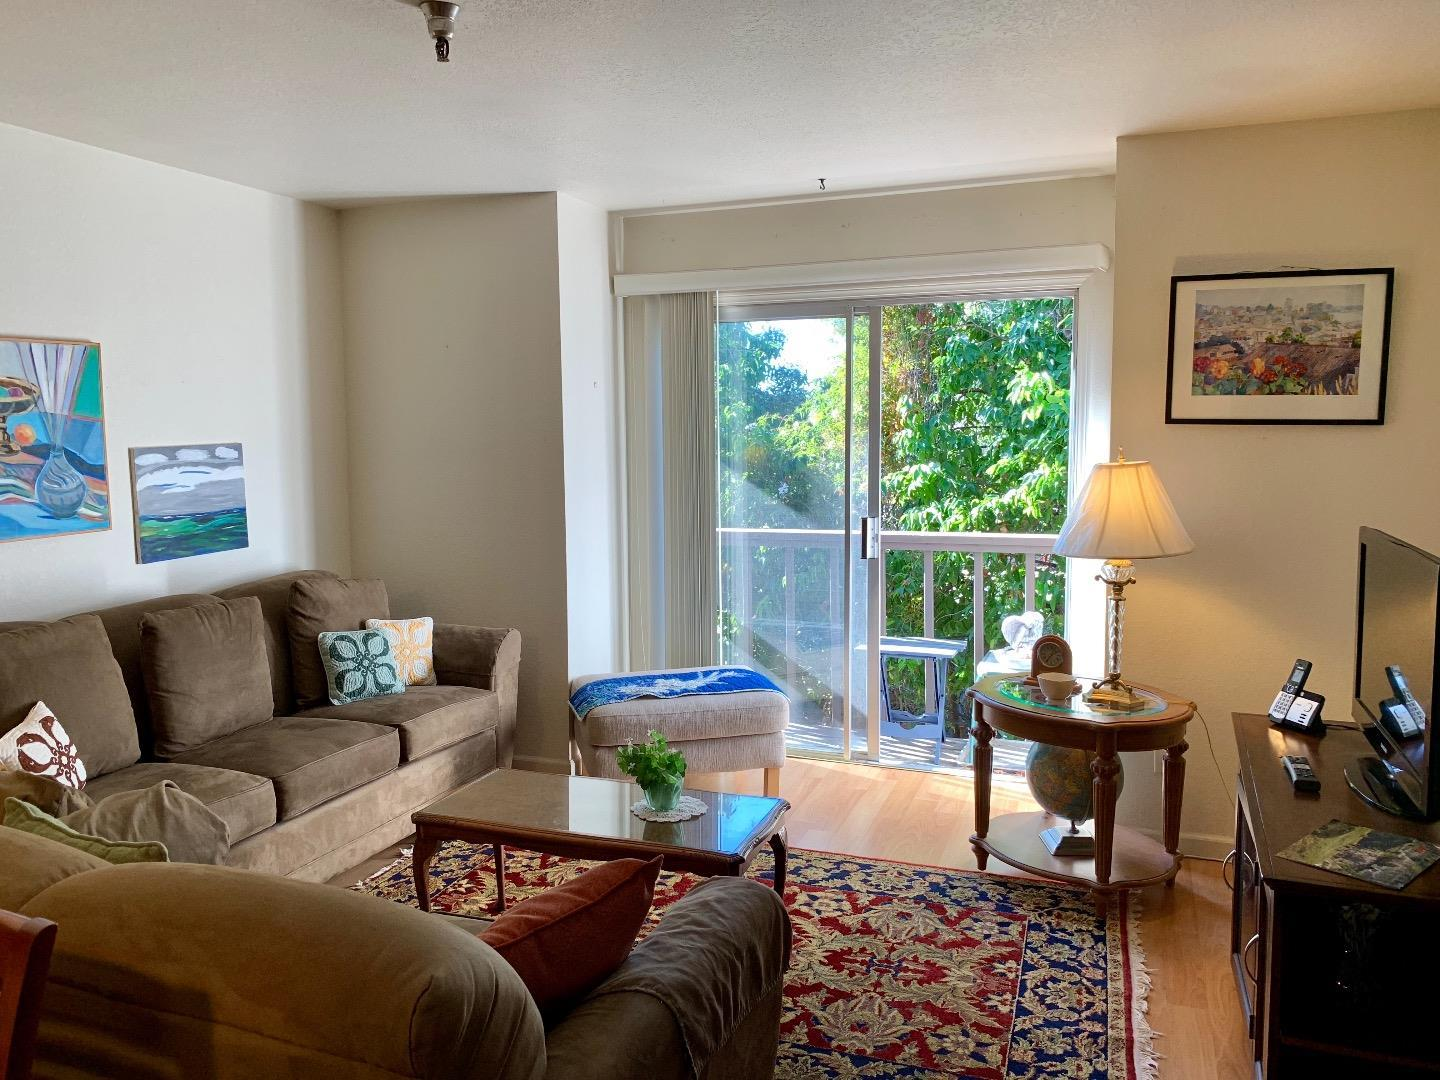 "SPACIOUS, BRIGHT, AND AFFORDABLE ""Measure J"" condominium, located in wonderful 62+ community (additional residents can be 55+) that is close to everything! This bright and sunny end unit on the second level has elevator access and views of trees from all windows. Conveniently located off of 17th Ave, near Soquel Ave and Hwy 1, the Vista Prieta Community has rec room, sun room, laundry rooms, garden, greenbelt and more. Buyer must meet income limitations restrictions ($83,500 for 2 people), cannot own any other real estate, and unit must be buyer's primary residence."